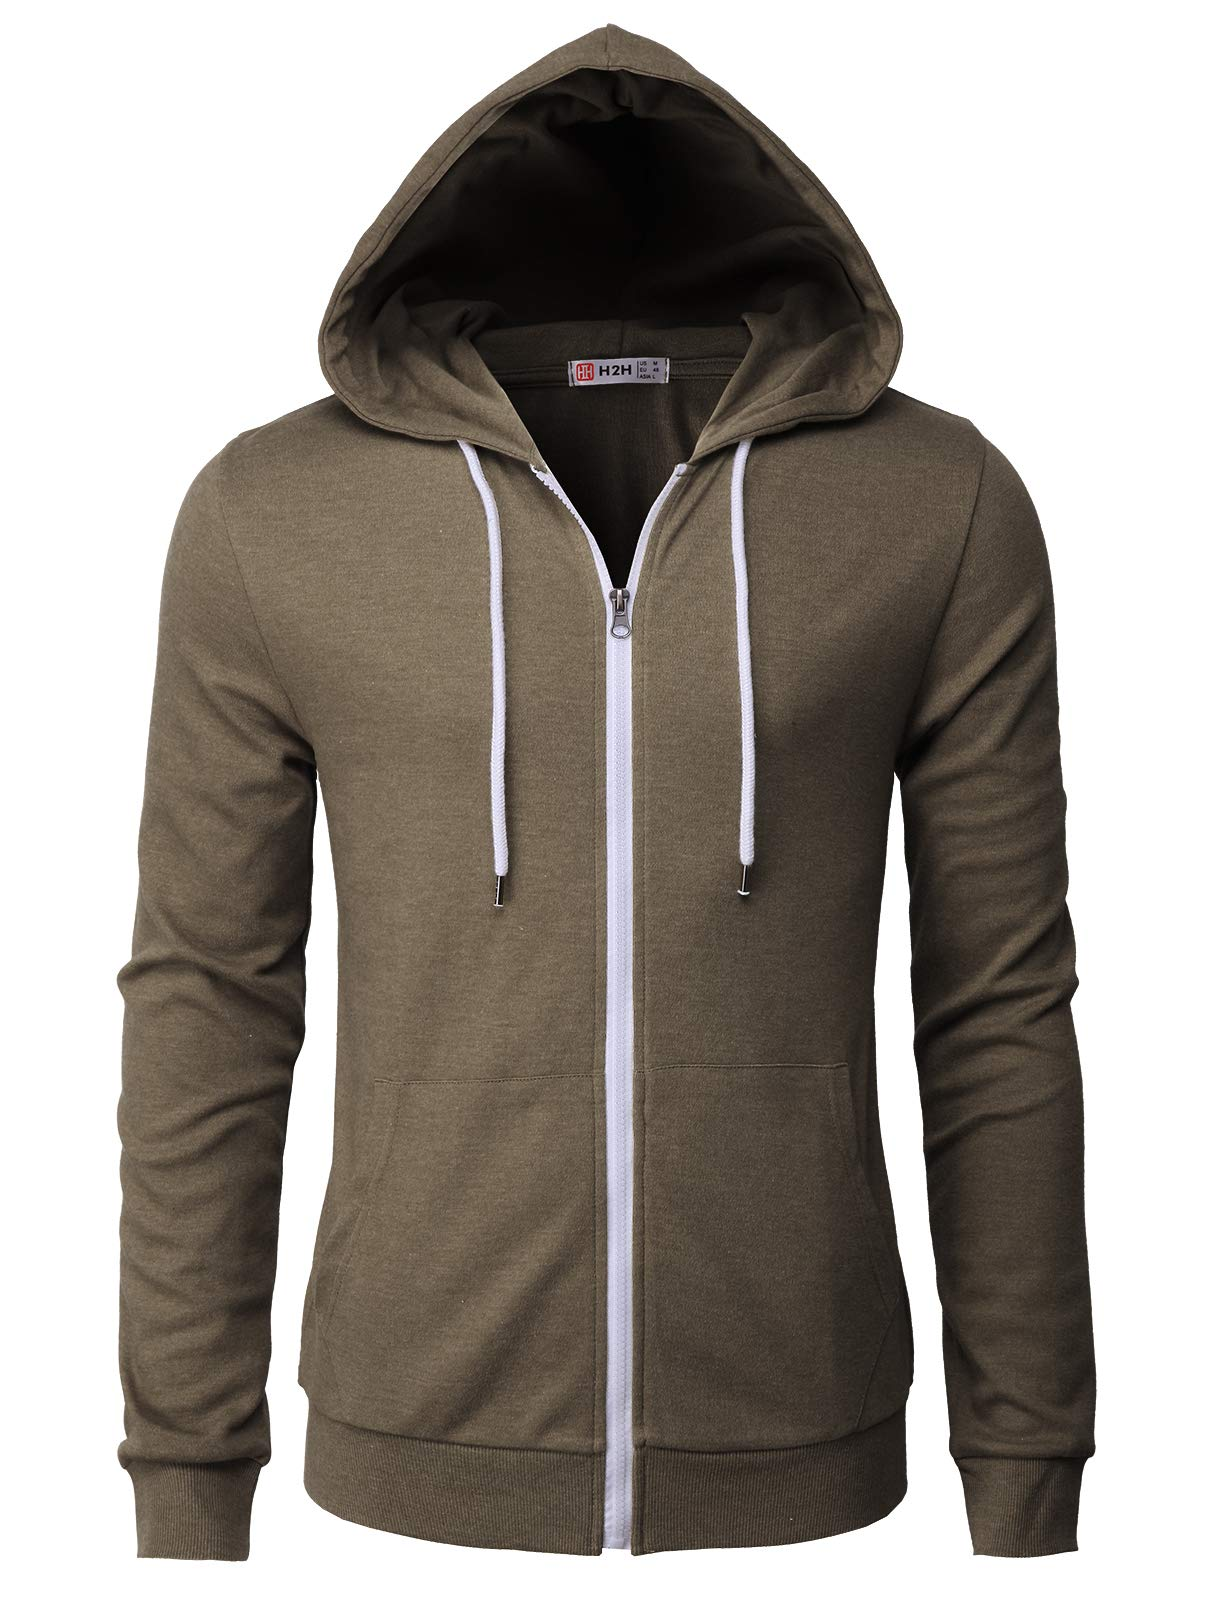 H2H Mens Casual Zip up Hoodie Basic Long Sleeve Zip up HEATHERBROWN US 2XL/Asia 3XL (CMOHOL048) by H2H (Image #1)